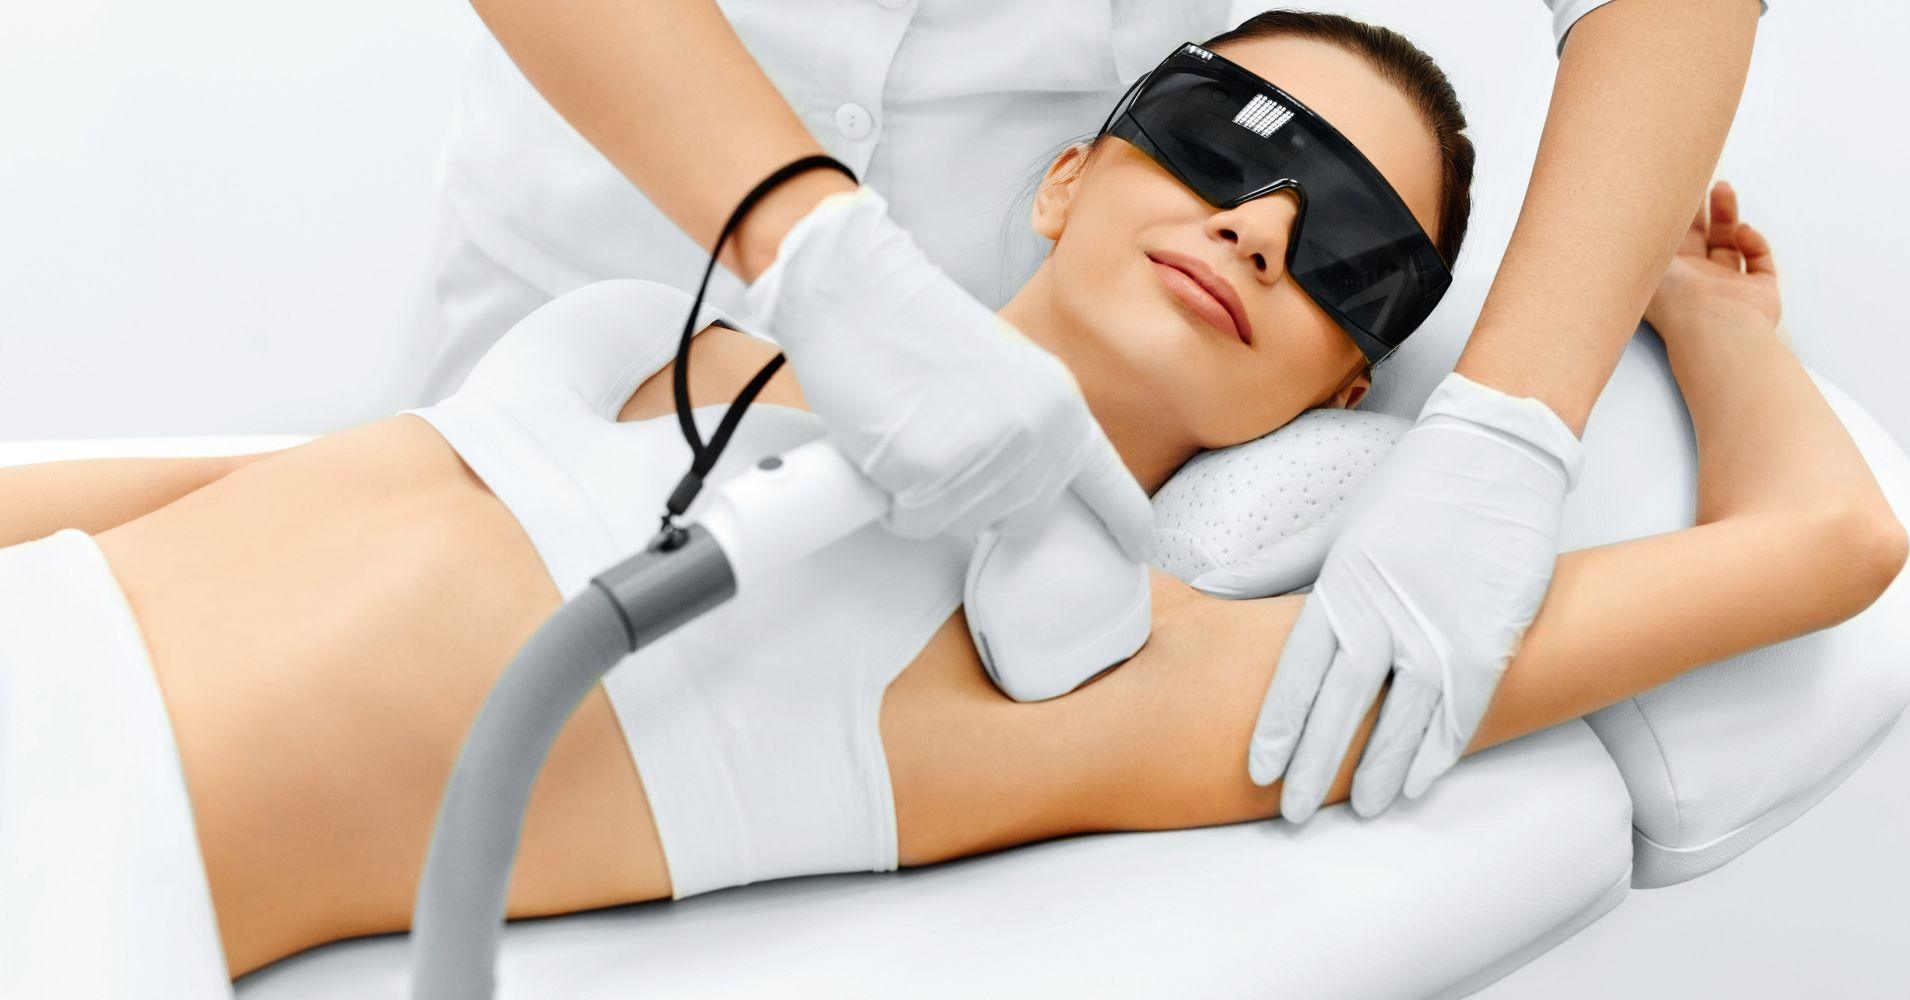 9 Myths About Laser Hair Removal And Waxing